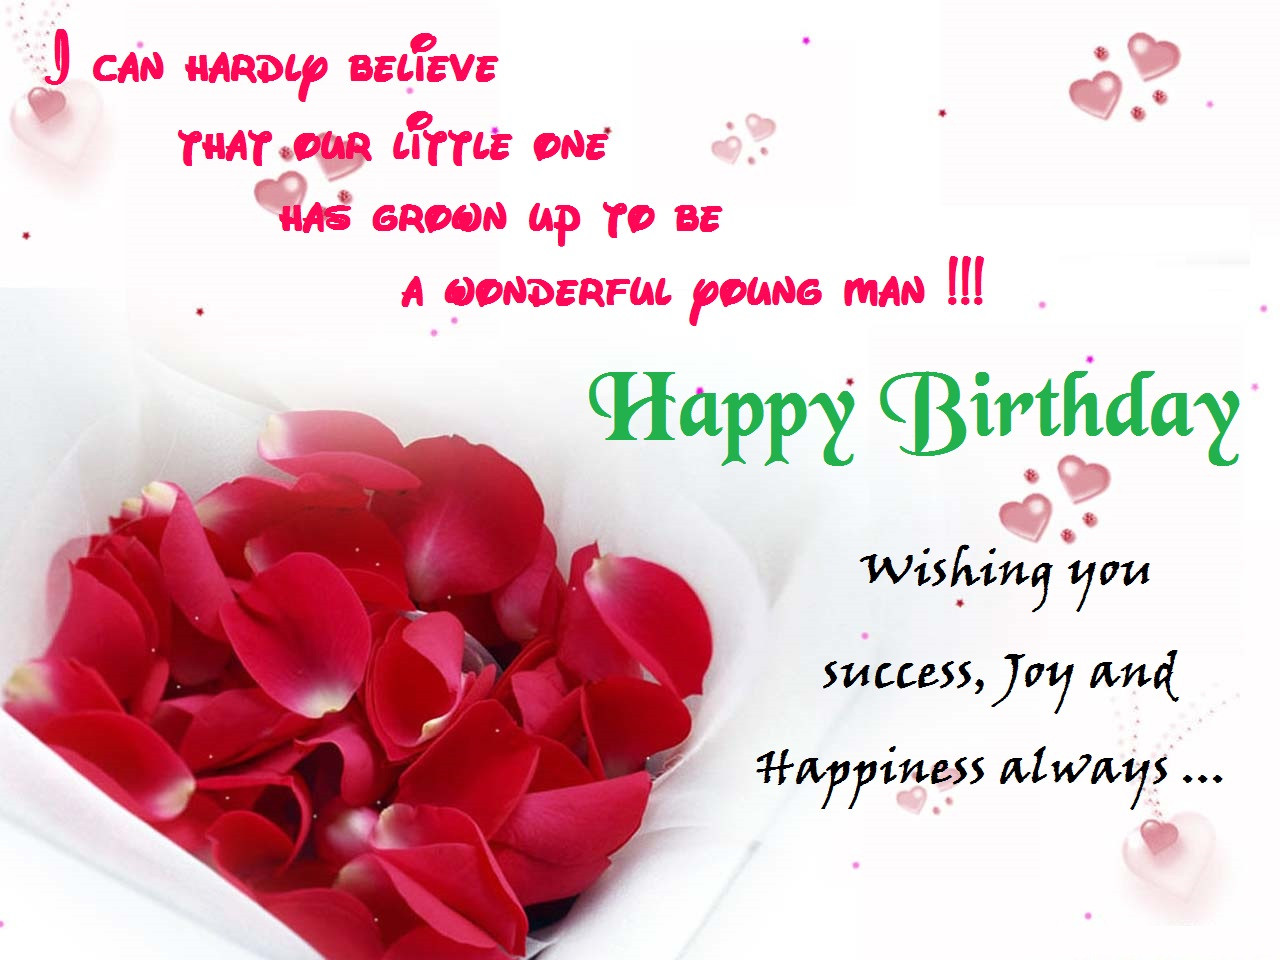 Best ideas about Birthday Wishes For Me . Save or Pin Birthday Messages Now.